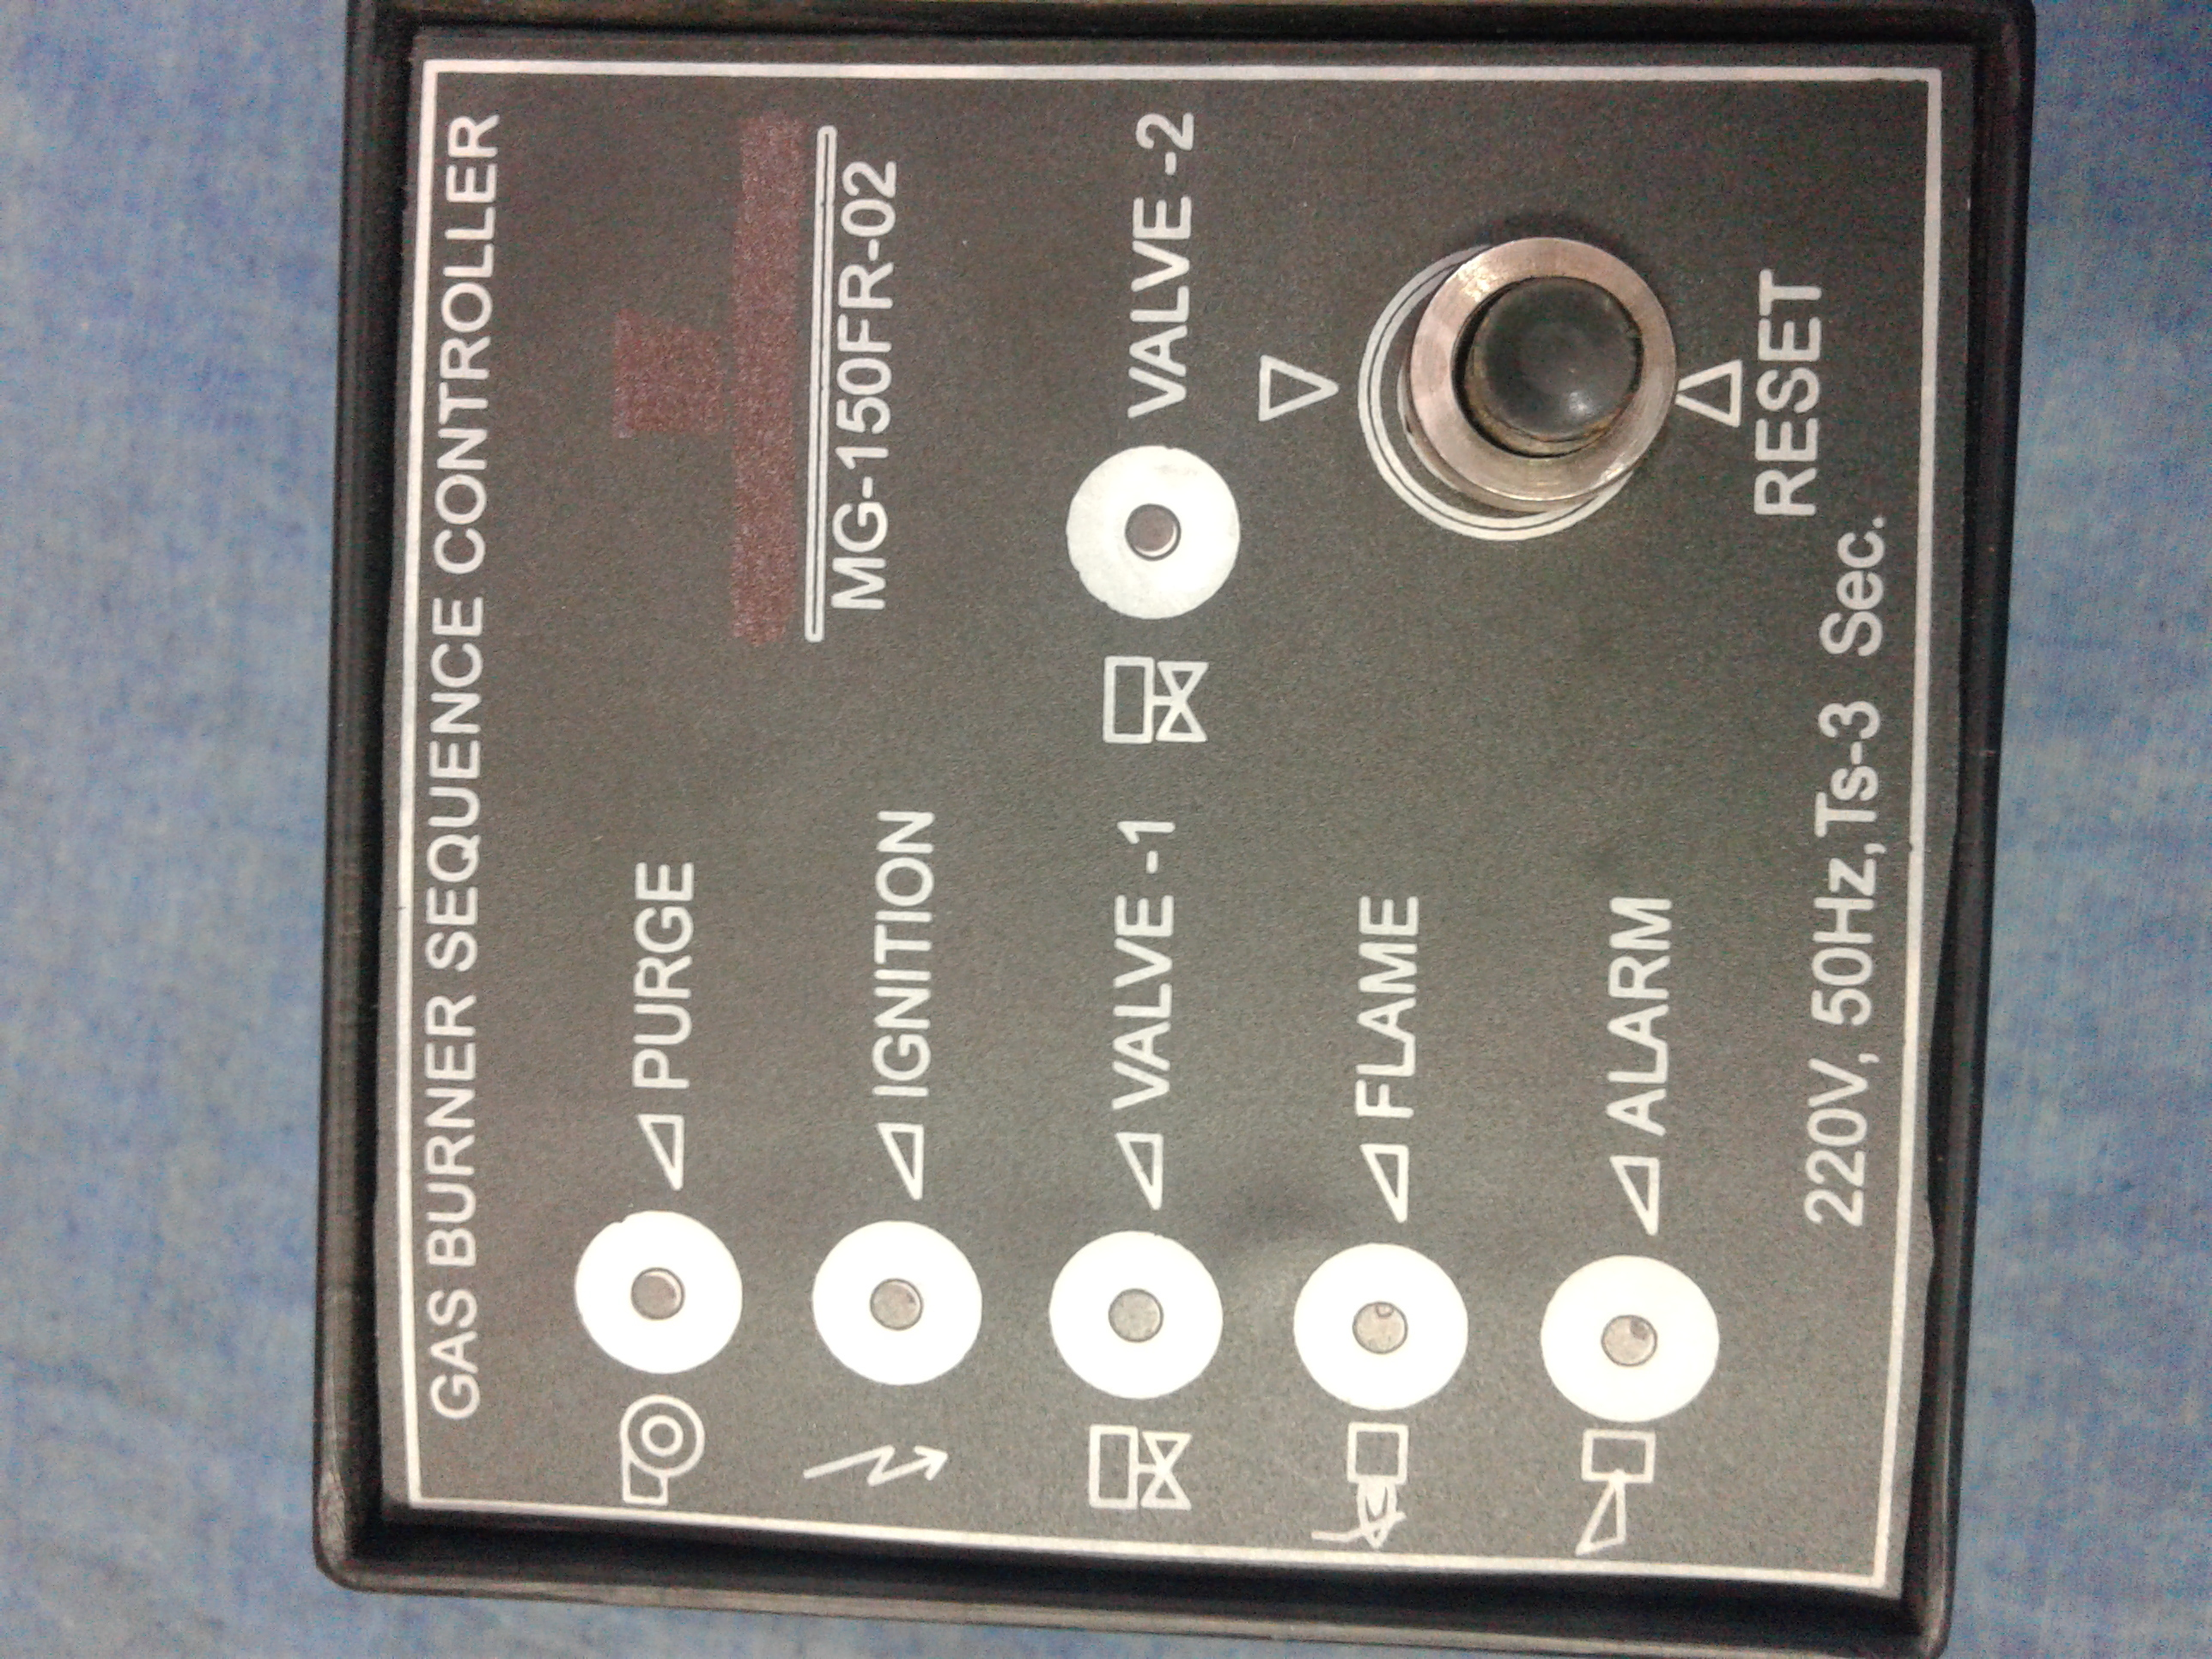 Industrial Burner Sequence Controller